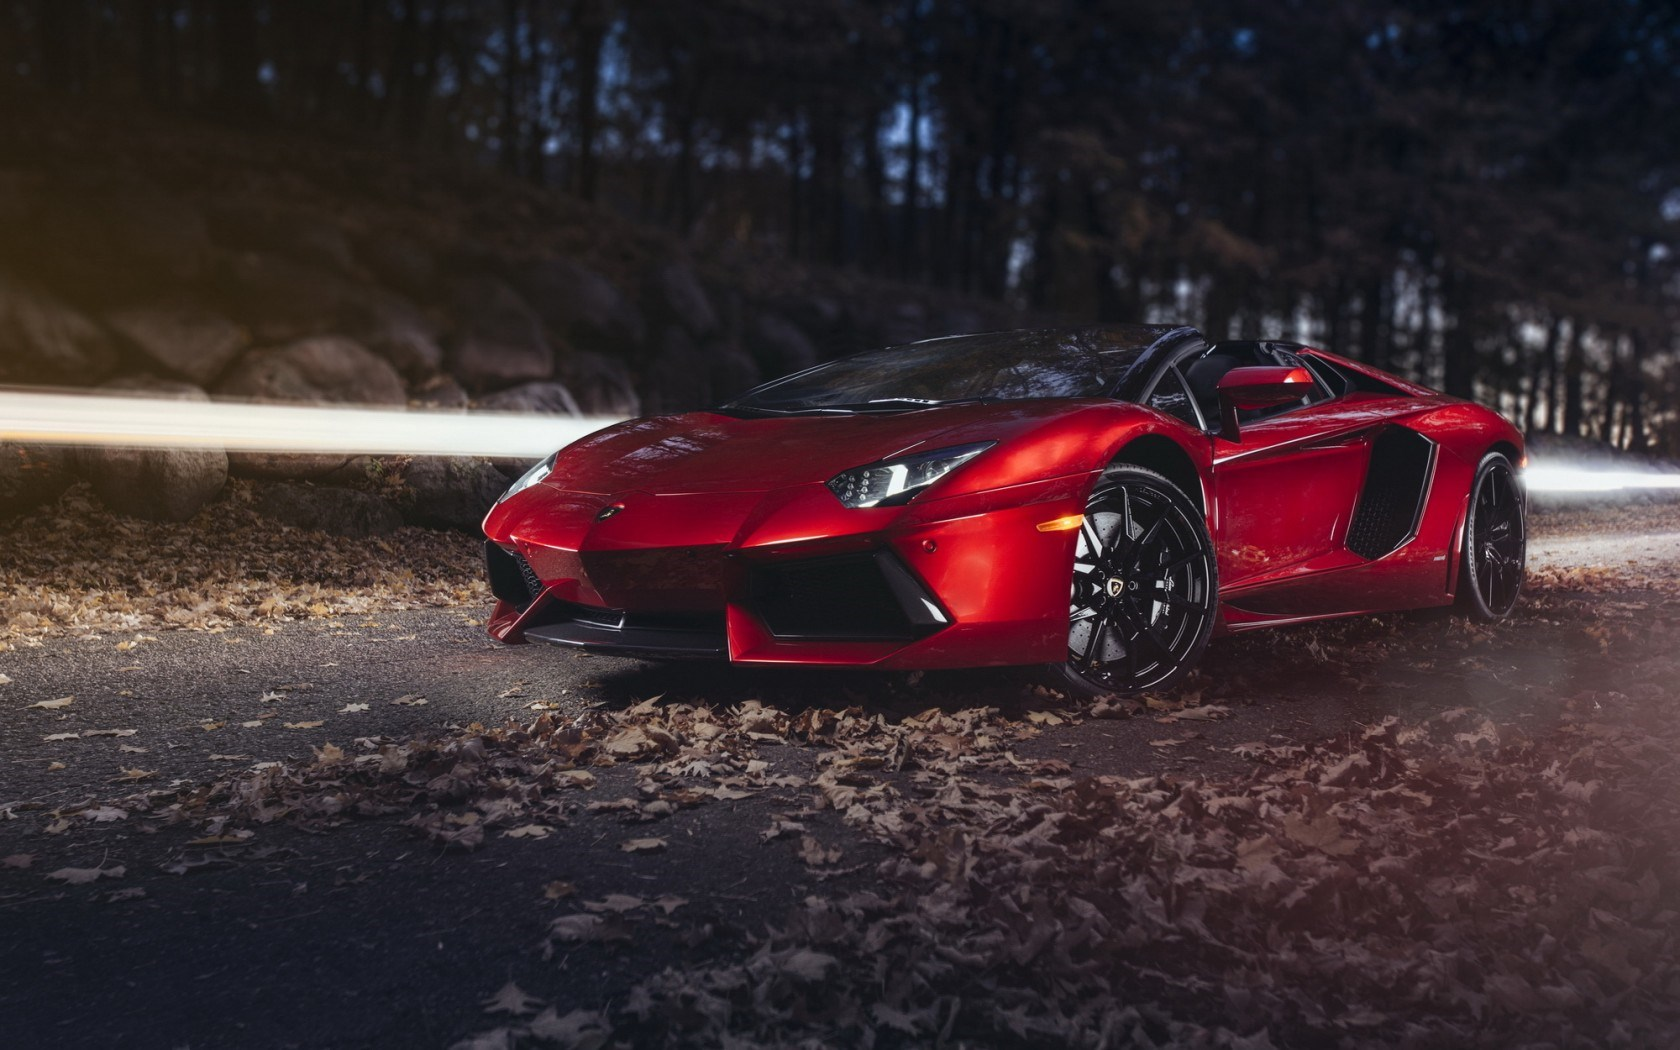 Lamborghini Aventador LP 700-4 Roadster Supercar Road